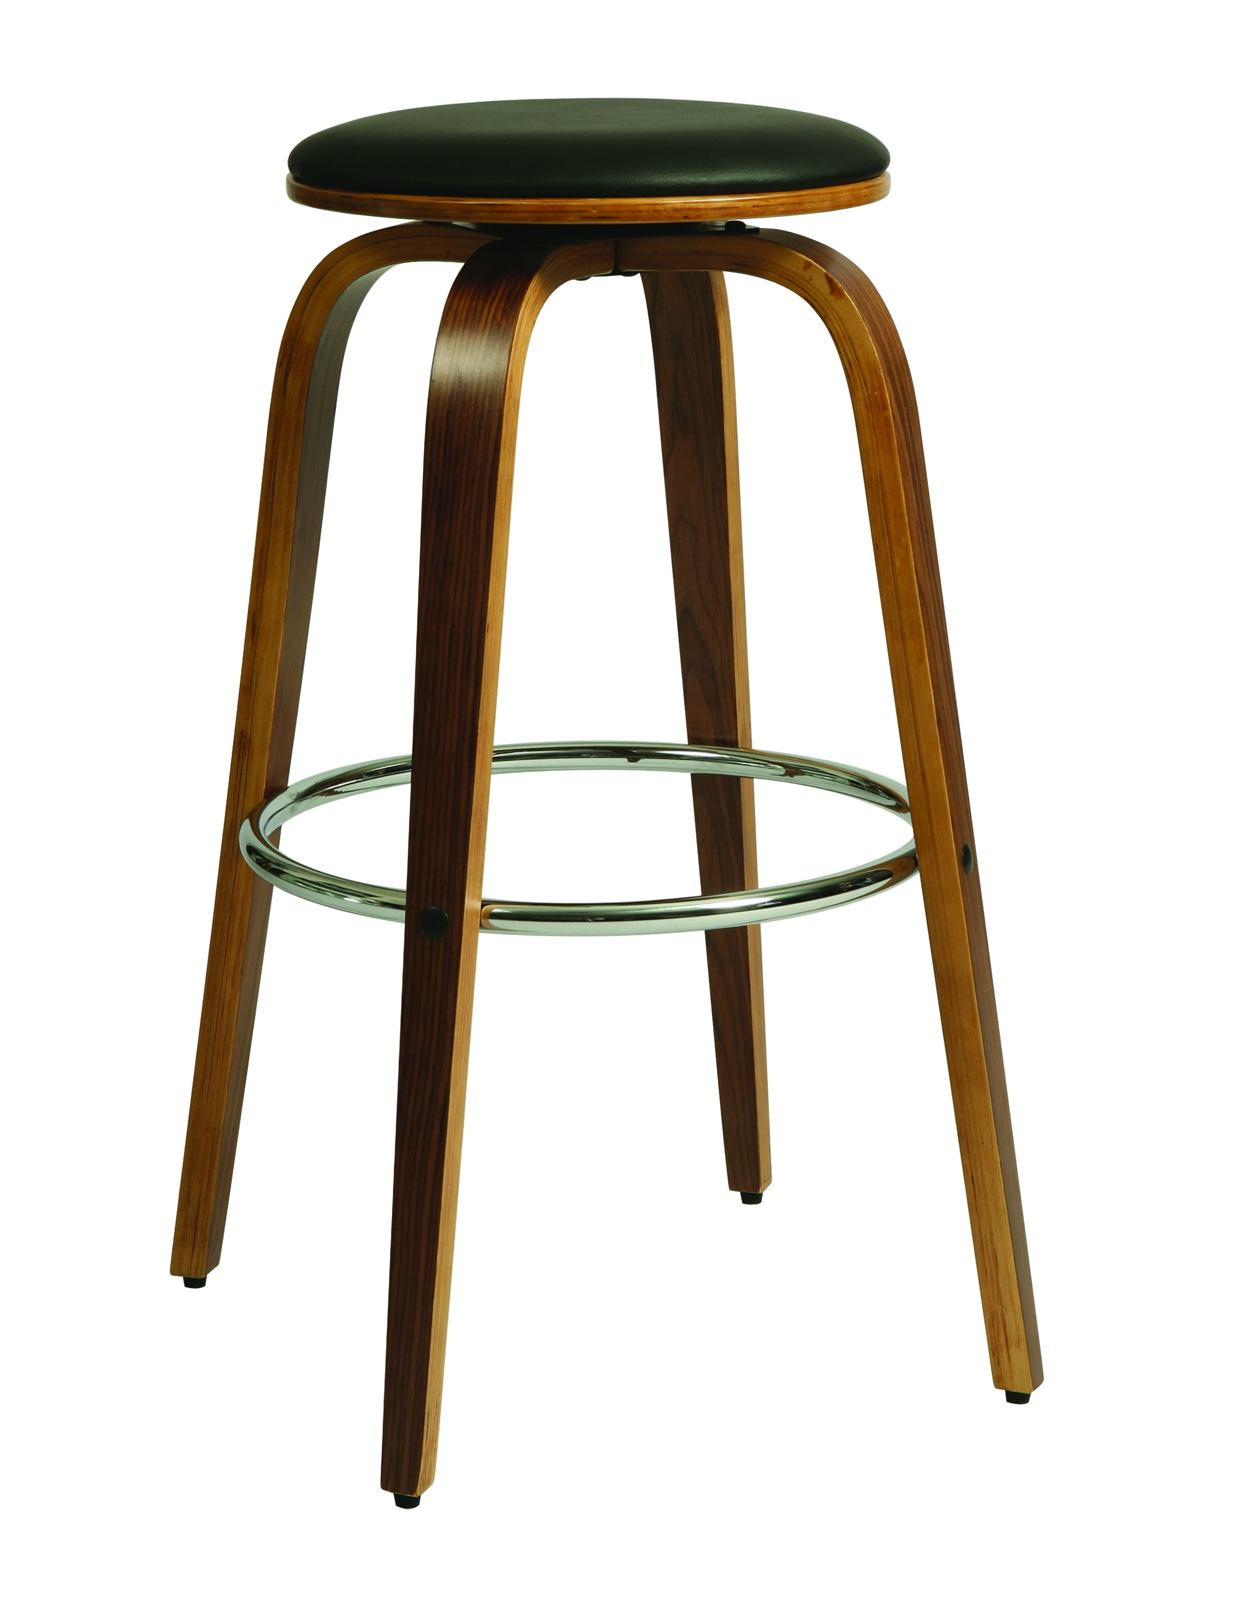 Pastel Furniture Yohkoh Swivel Barstool in Chrome and Walnut Veneer (Set of 2) YH-215-30-CH-WA-979